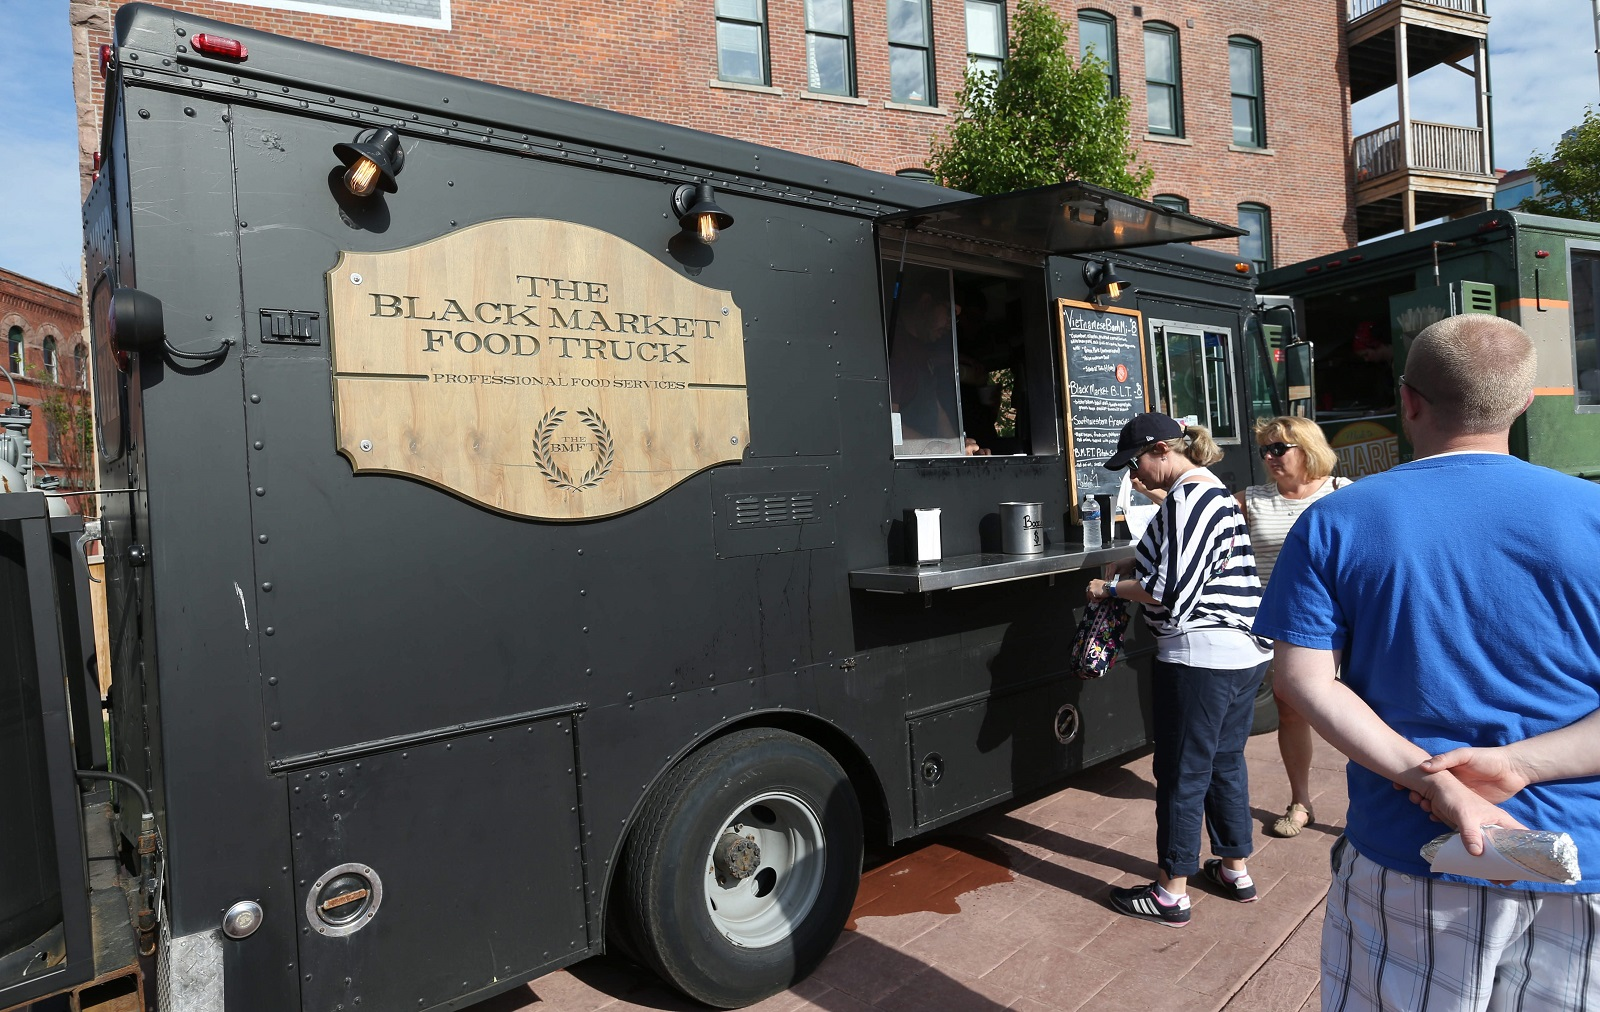 The Black Market Food Truck. (Sharon Cantillon/Buffalo News)